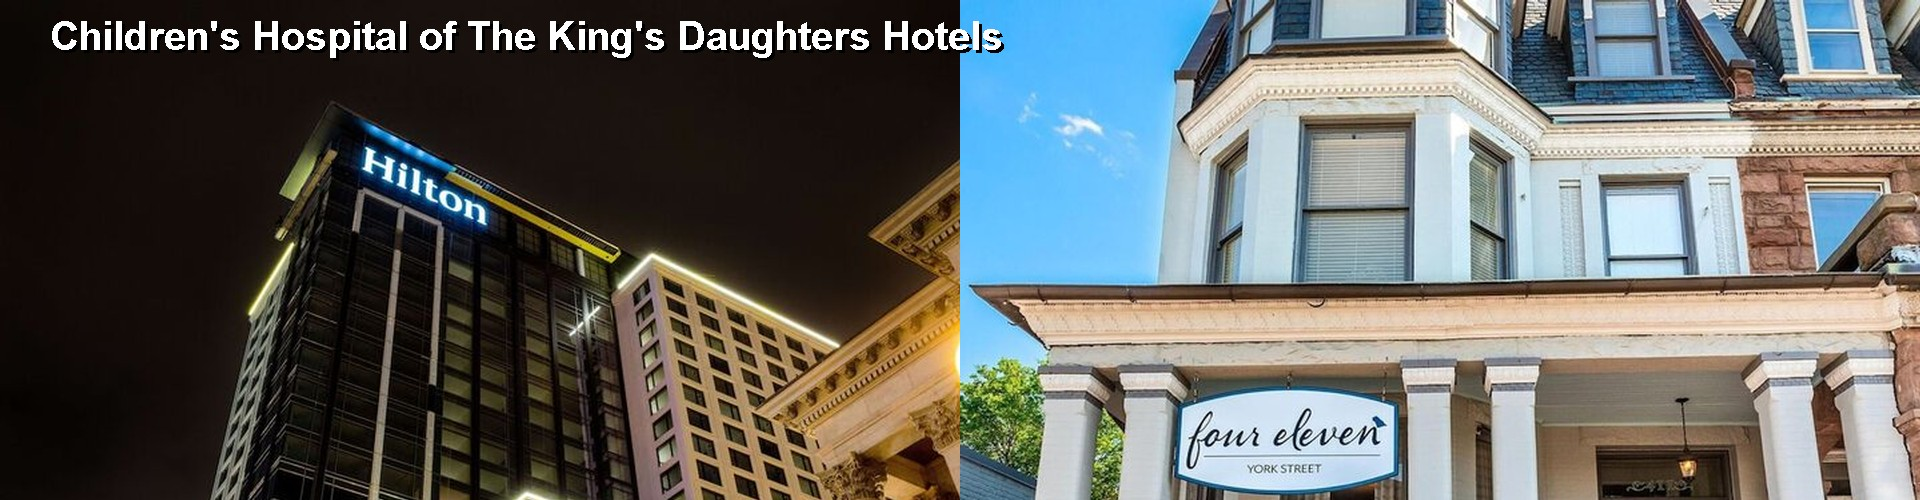 5 Best Hotels near Children's Hospital of The King's Daughters